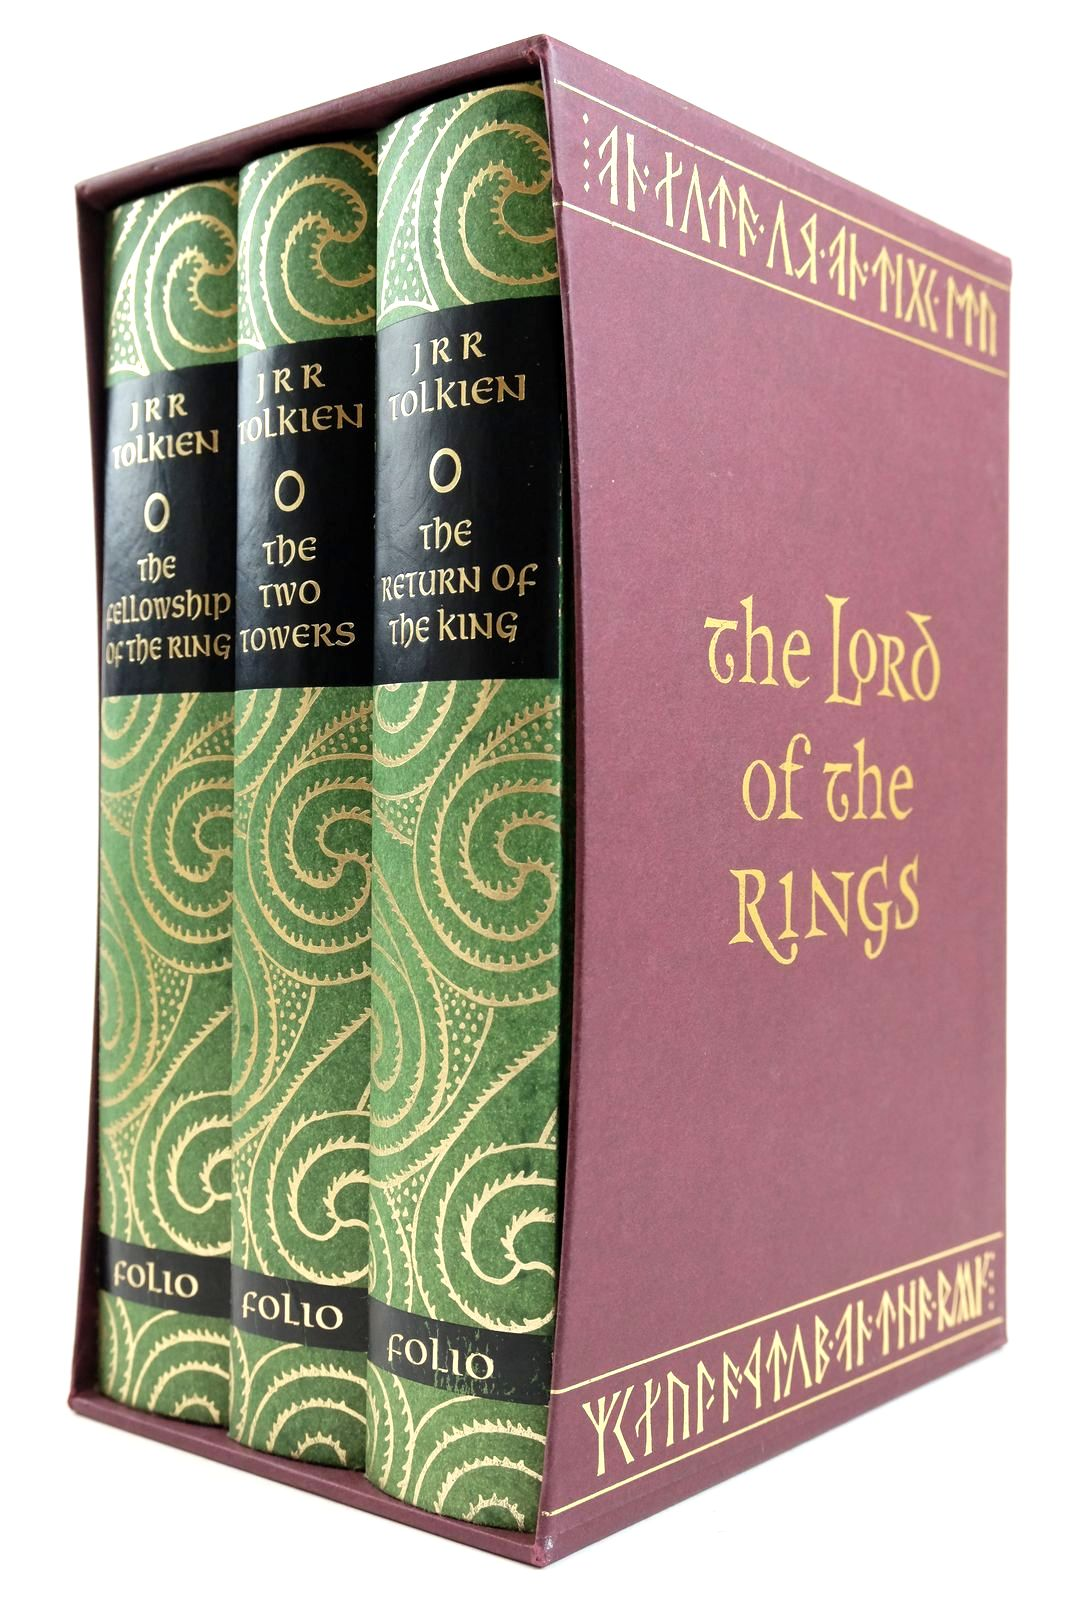 Photo of THE LORD OF THE RINGS